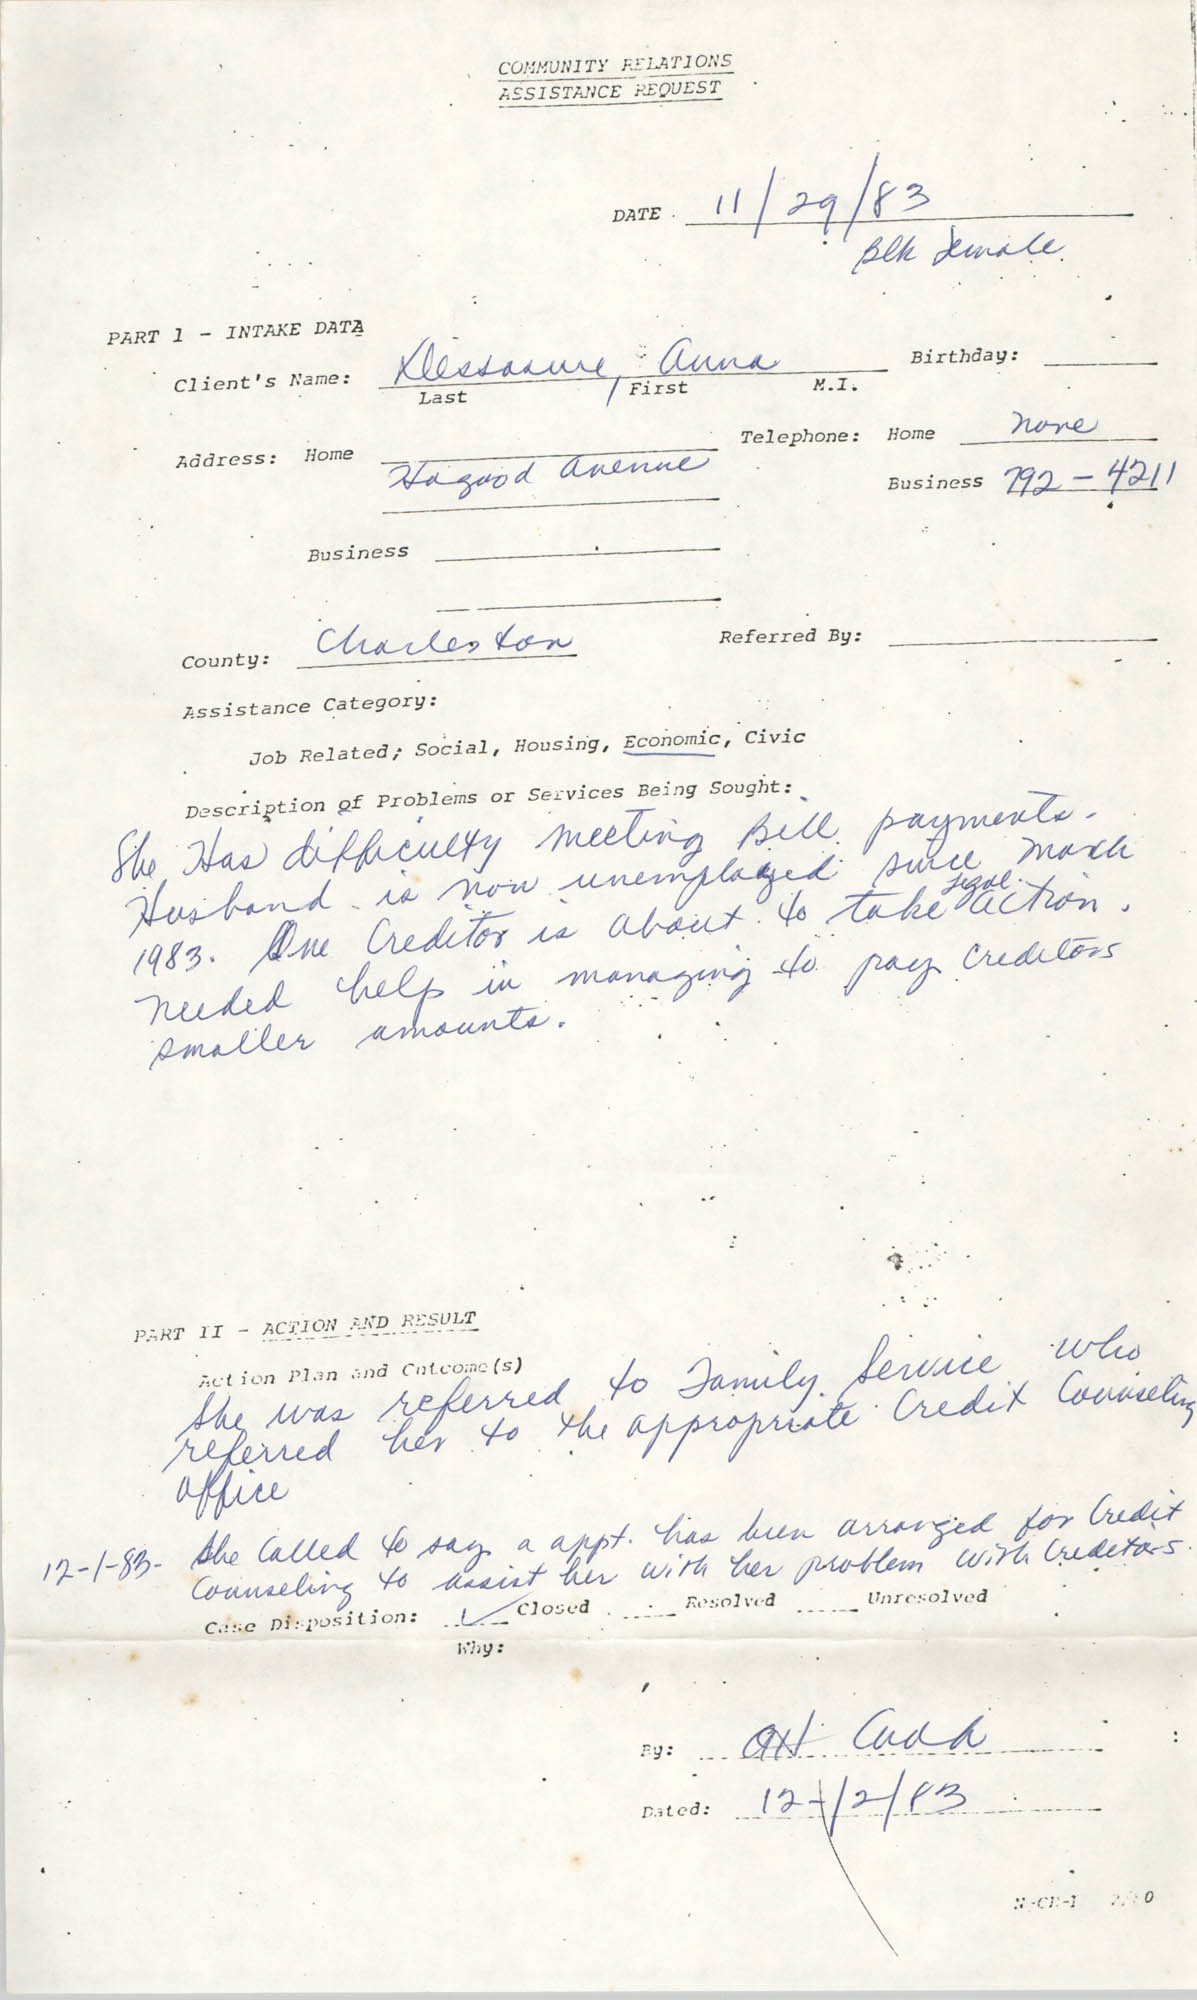 Community Relations Assistance Request, November 29, 1983